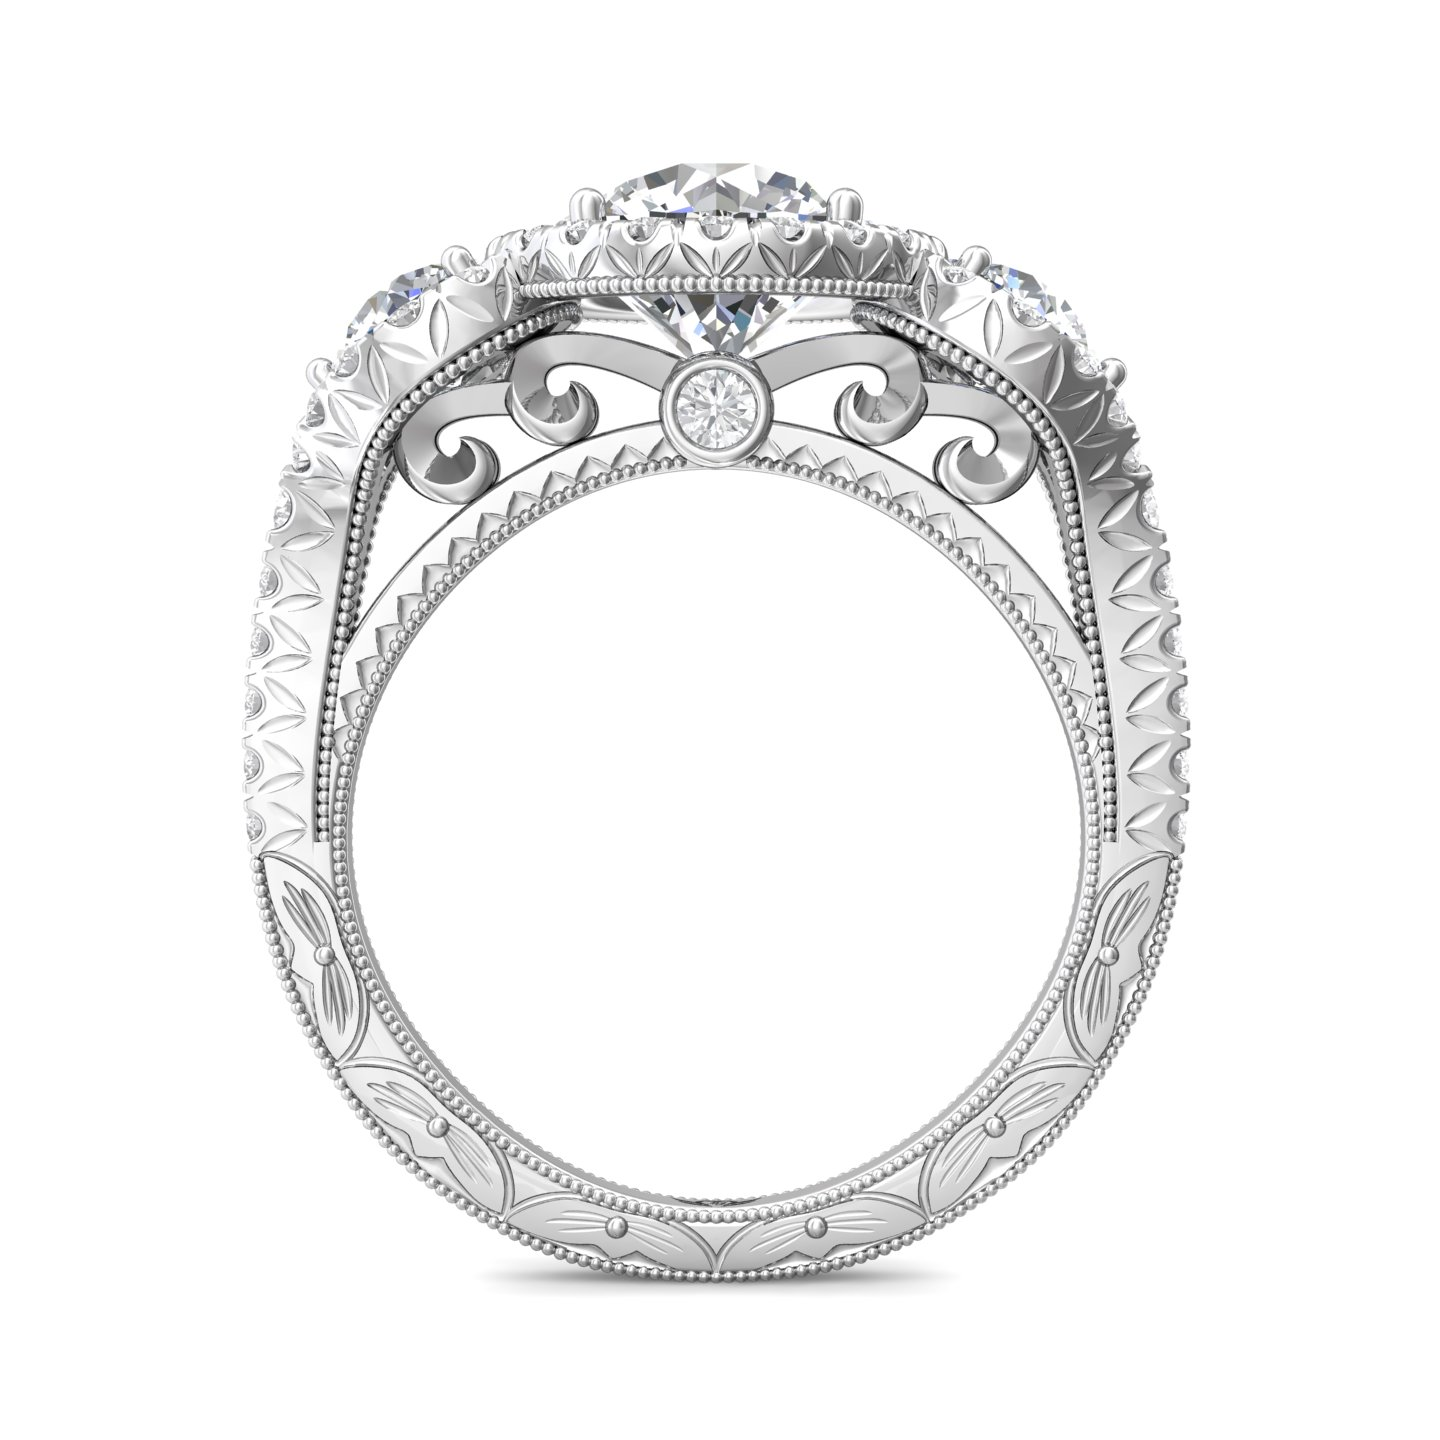 Rings - 14K White Gold FlyerFit Vintage Engagement Ring - image 2